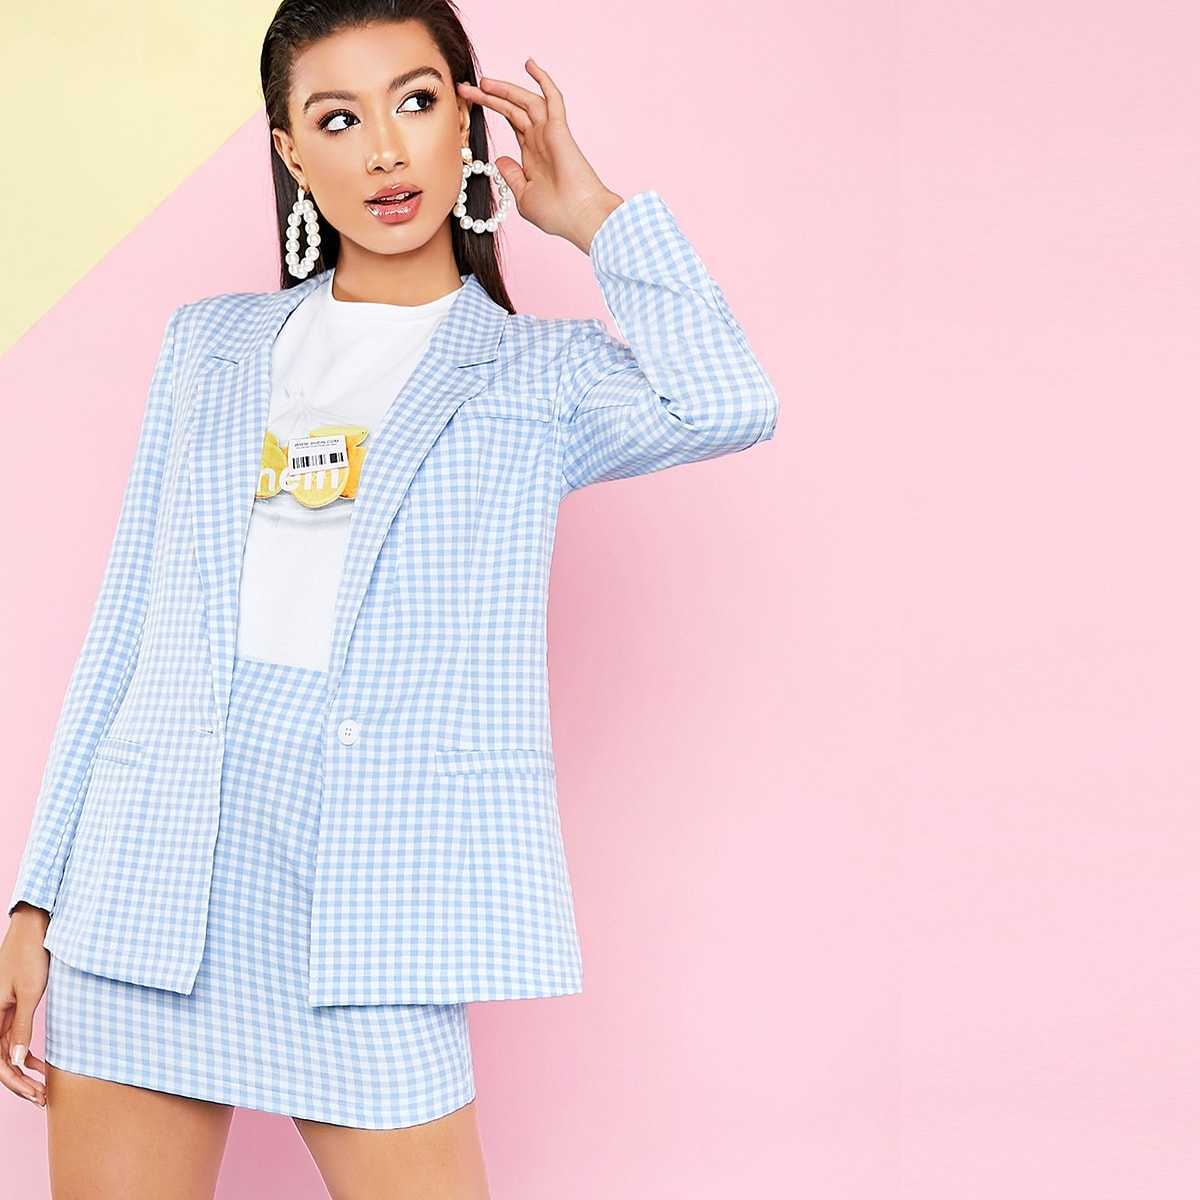 Notched Collar Buttoned Front Gingham Blazer & Skirt Set in Blue Pastel by ROMWE on GOOFASH